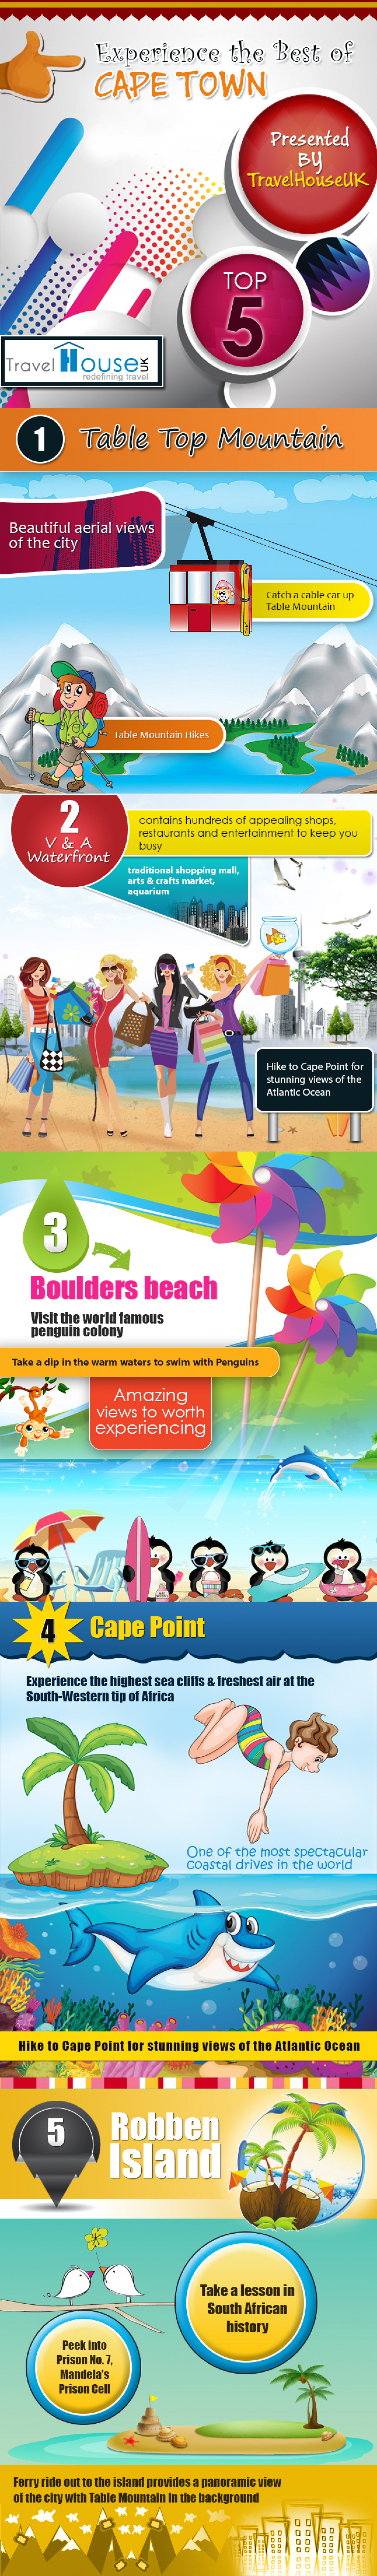 Cape Town Attractions Infographic